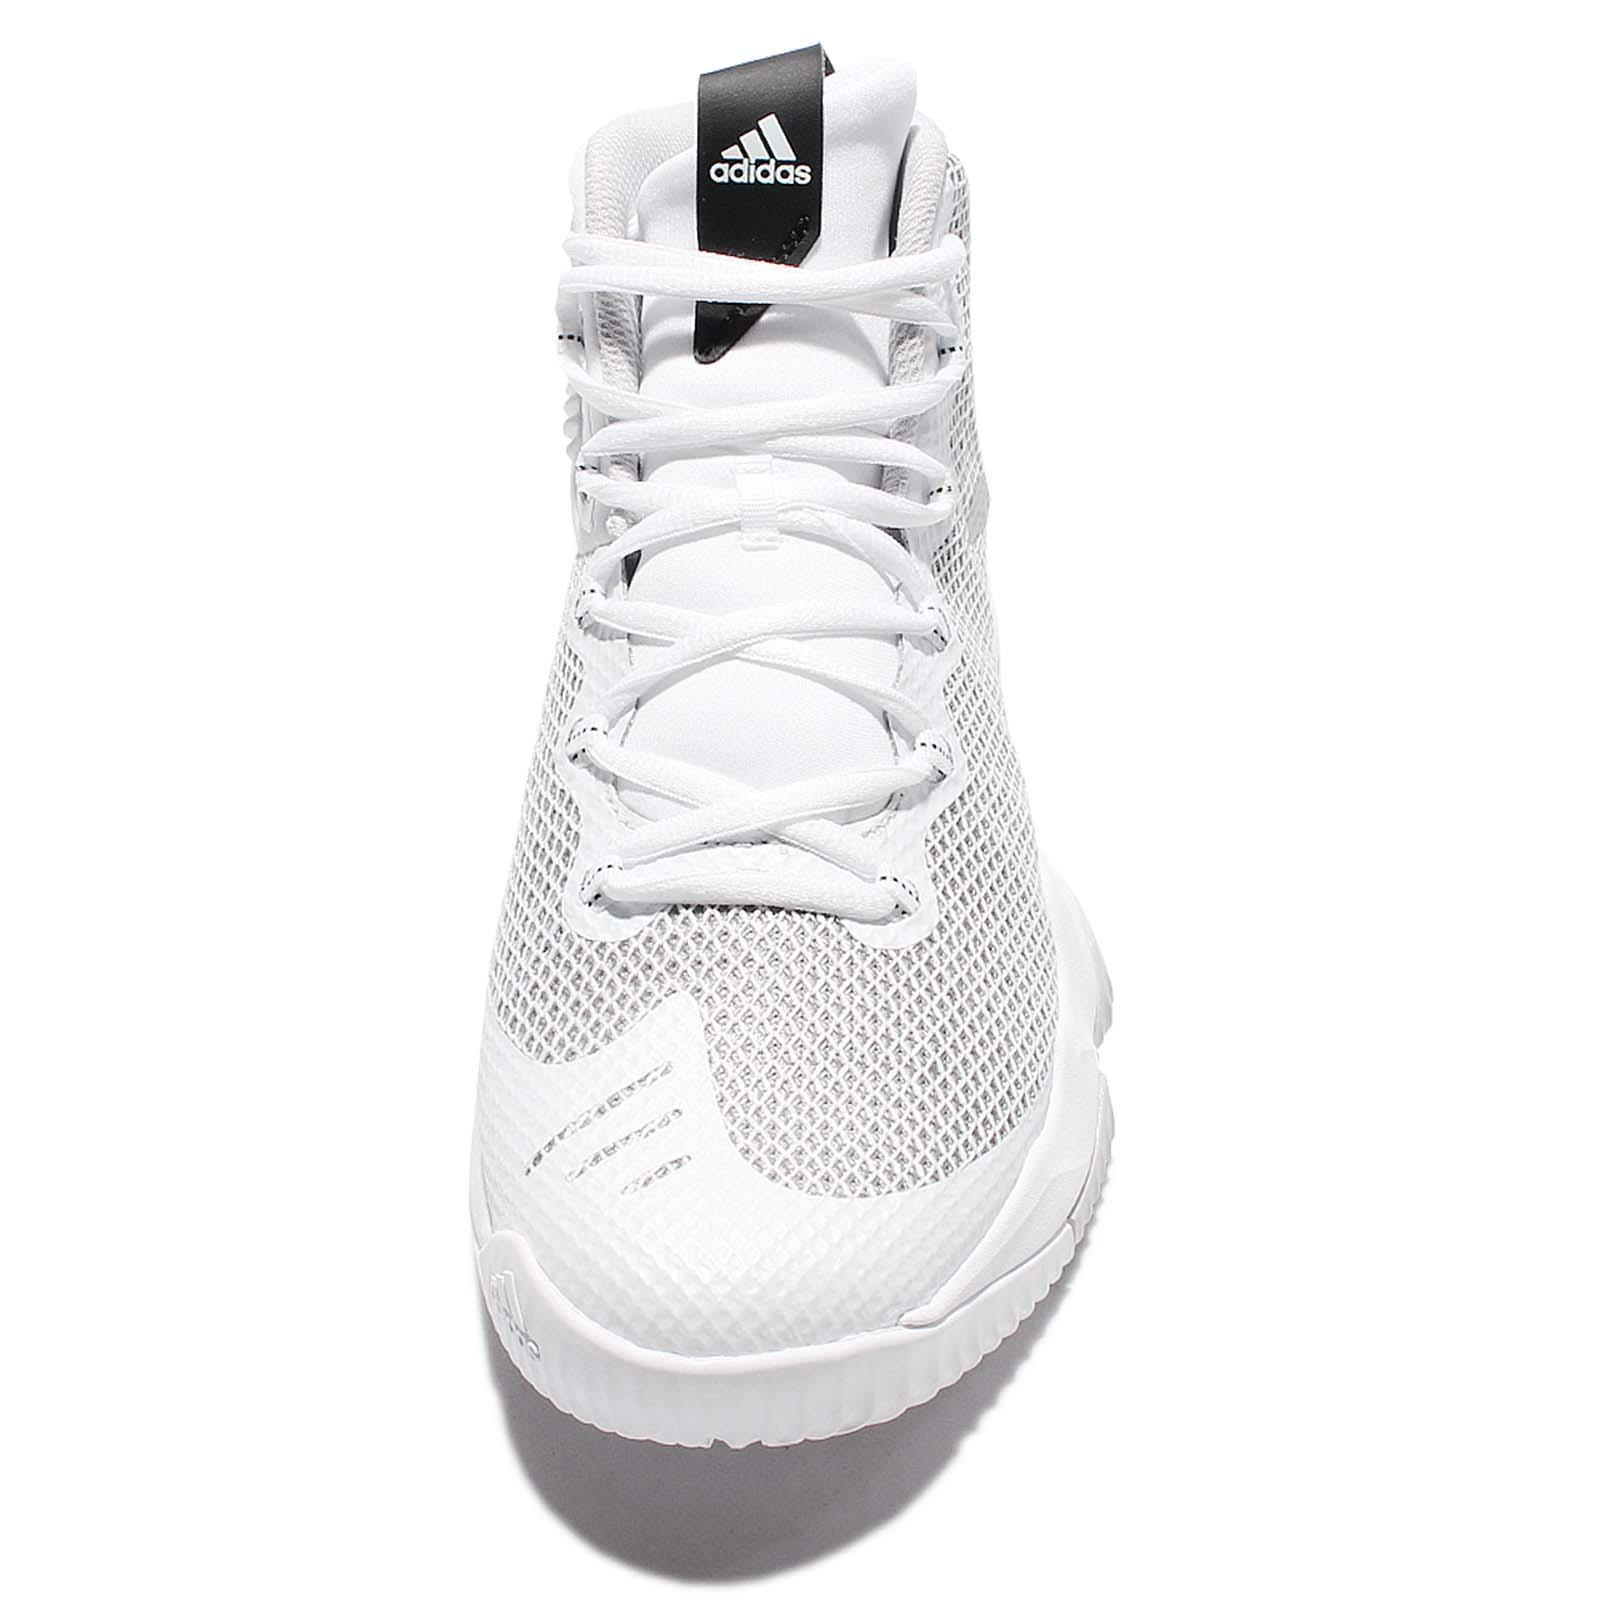 quality design 9d36c 7ce82 We got sick material combo featuring in the adidas Crazy Hustle – textile  mesh for comfy fit, Fuse overlays in high wear areas and Neoprene in the  back.